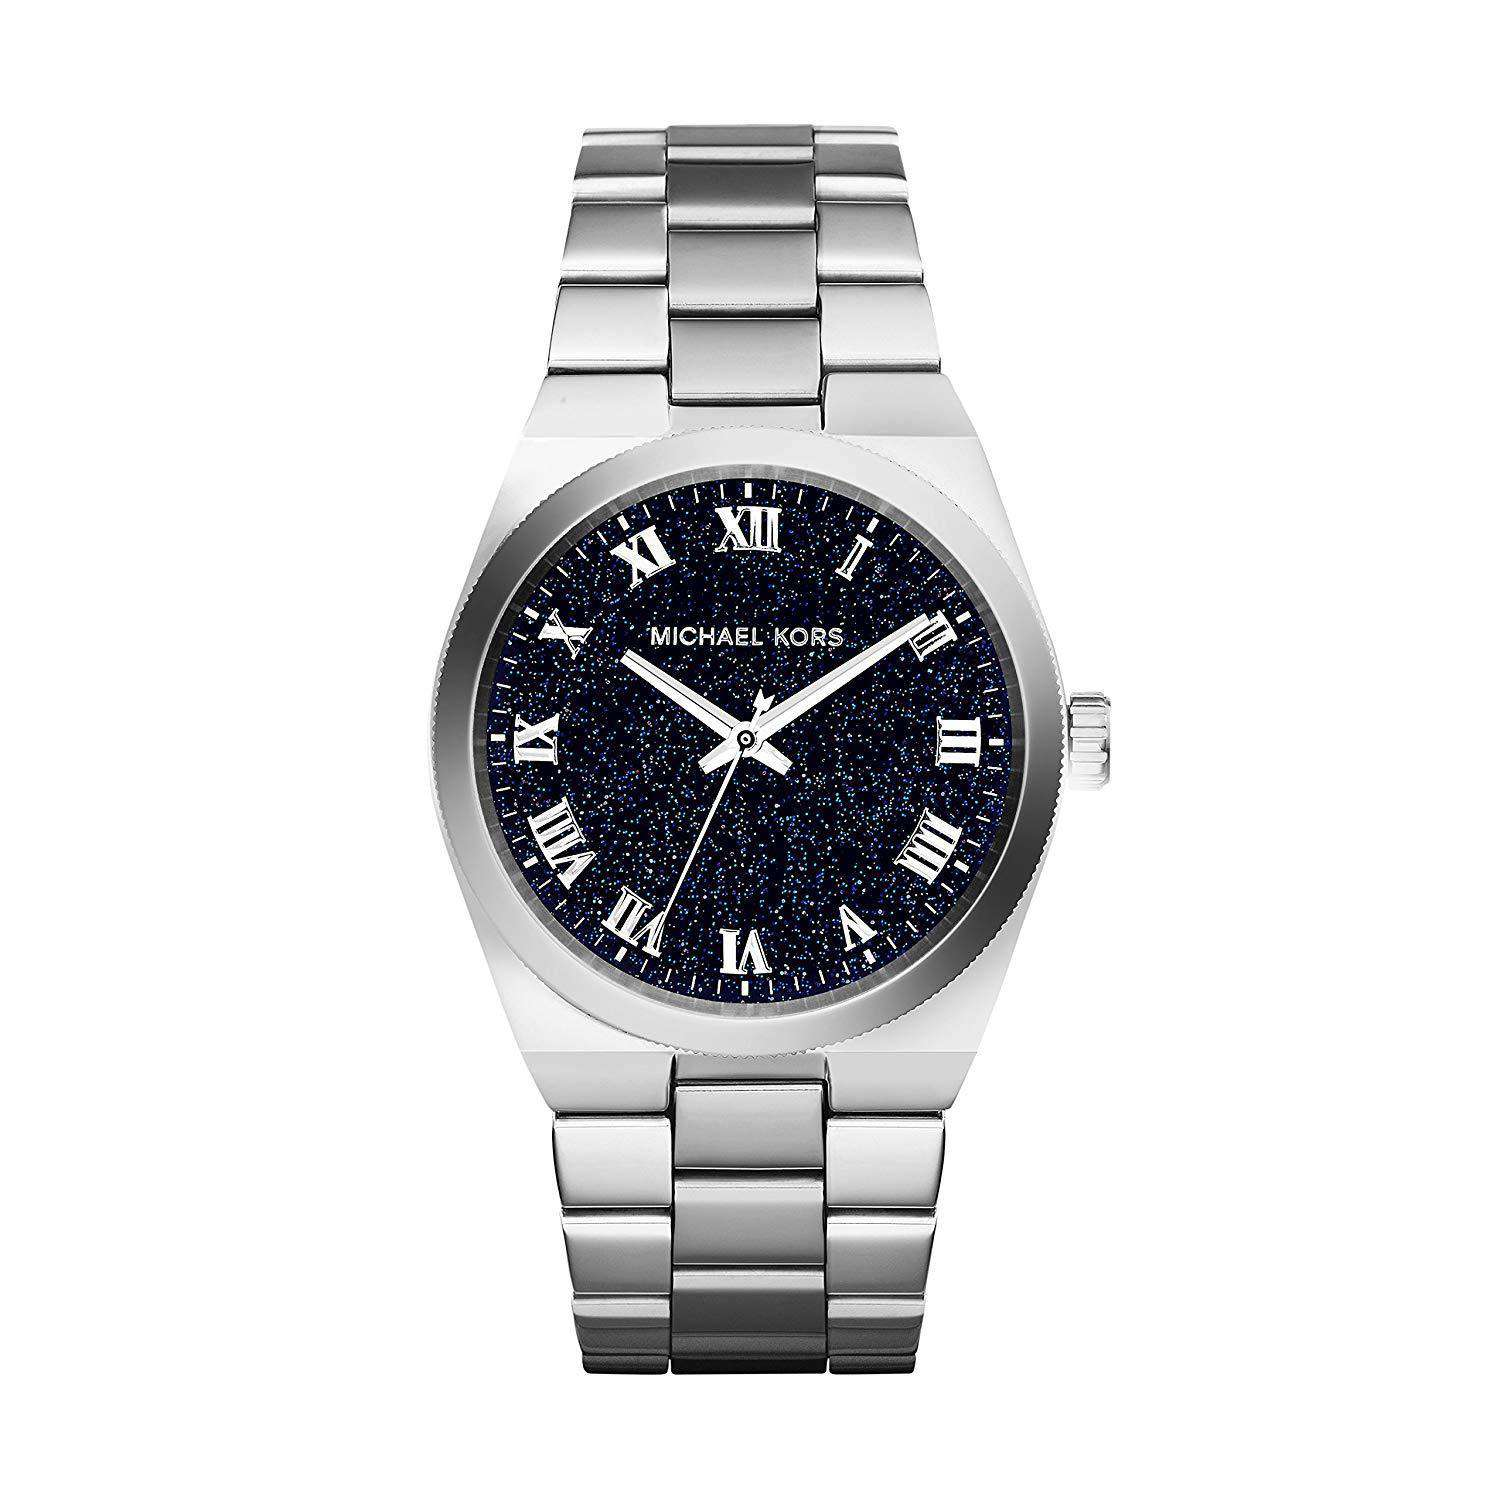 Michael Kors MK 6113 Women Channing Midnight Blue Shimmer Dial Watch Steel Umisfashion Store